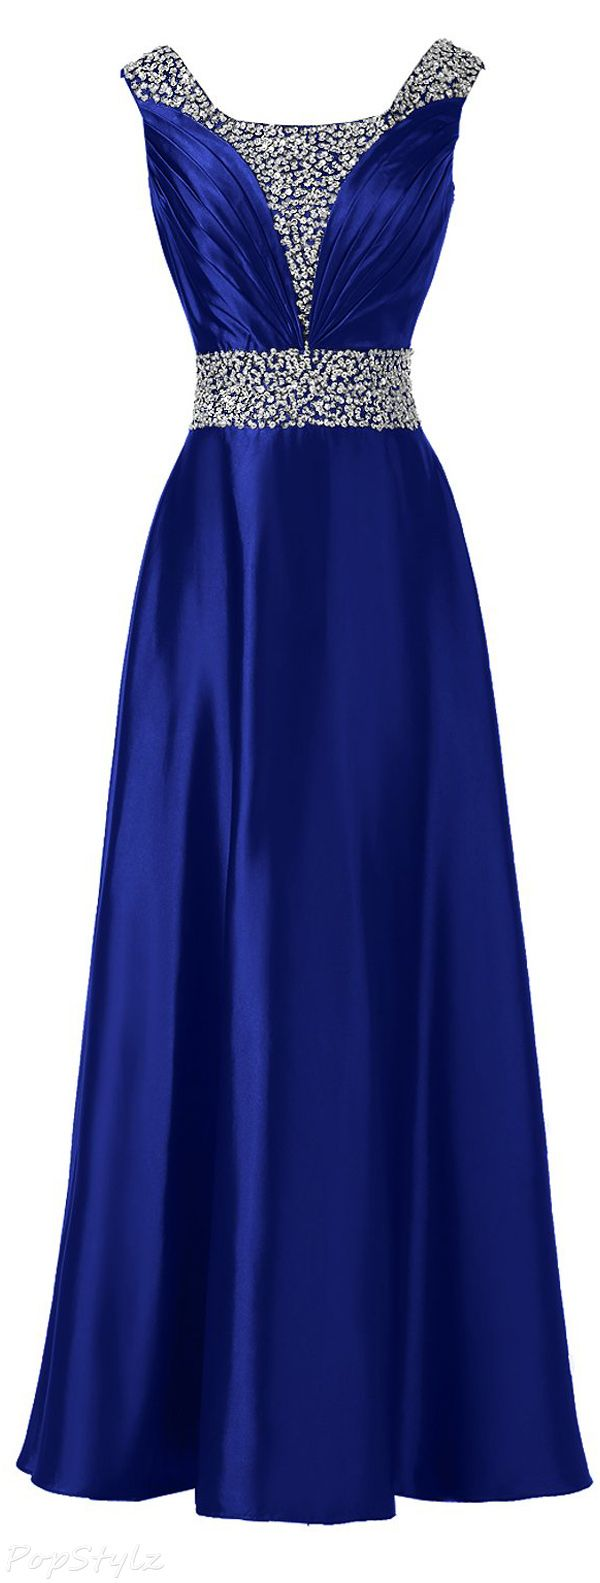 Sunvary Vintage Sequin Long 2015 Evening Gown